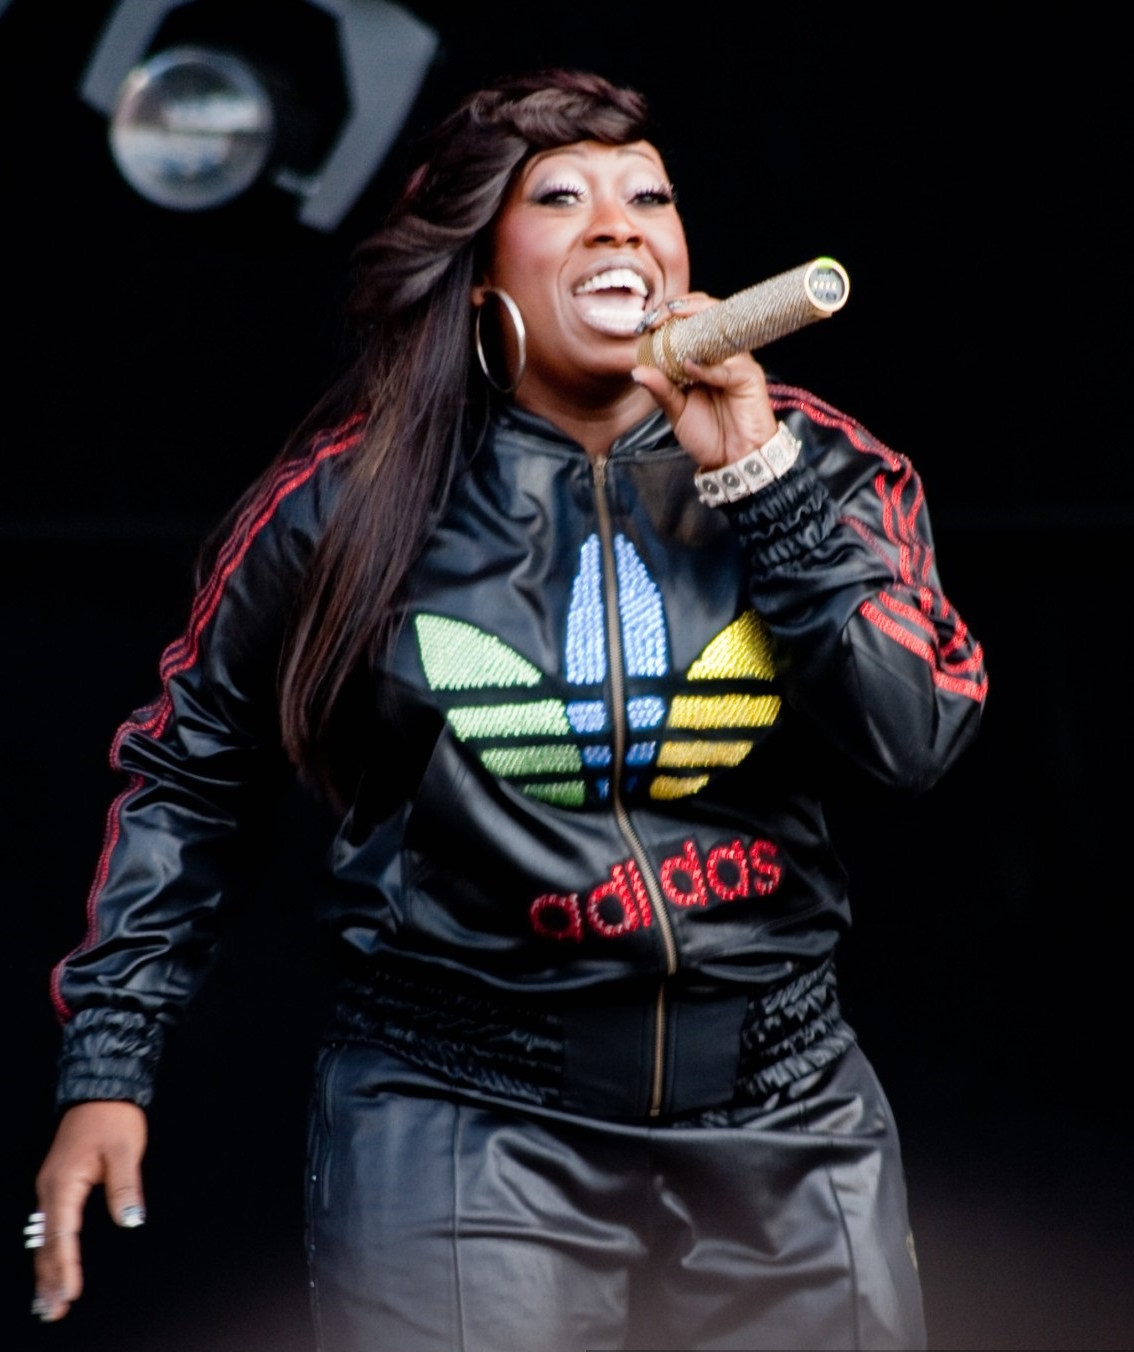 Adidas Missy Elliot | Kid U Store | Flickr